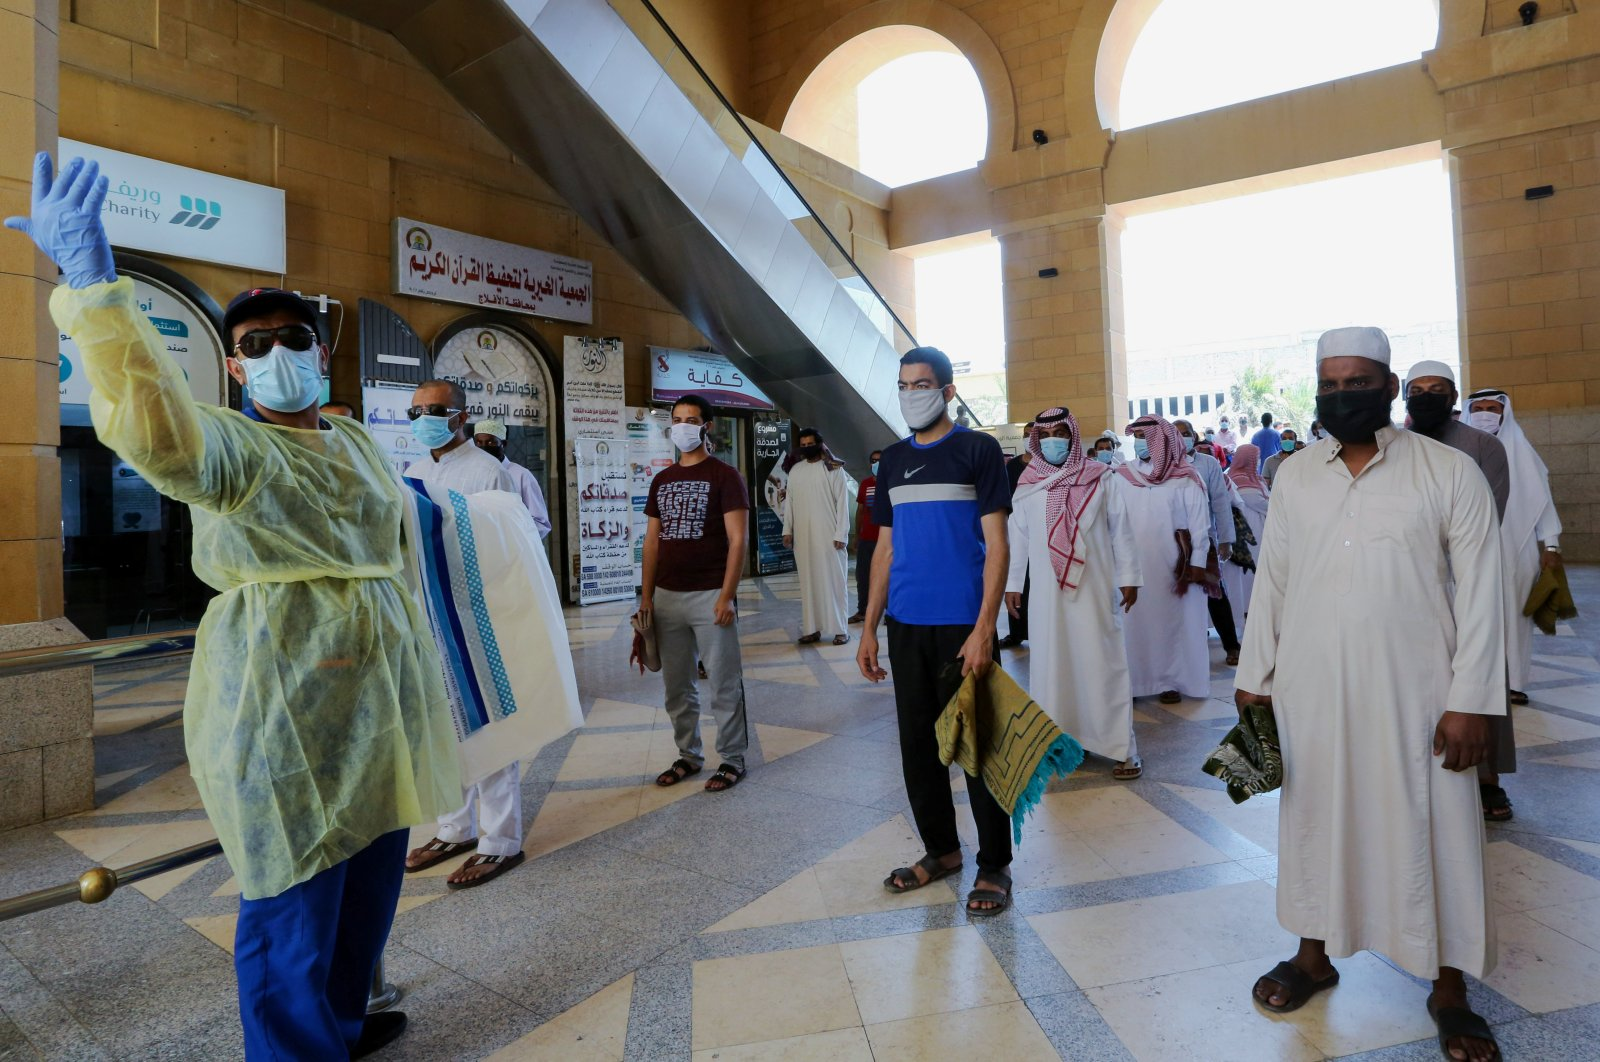 A security worker checks worshipers before they perform Friday prayers inside the Al-Rajhi Mosque, Riyadh, Saudi Arabia, June 5, 2020. (Reuters Photo)